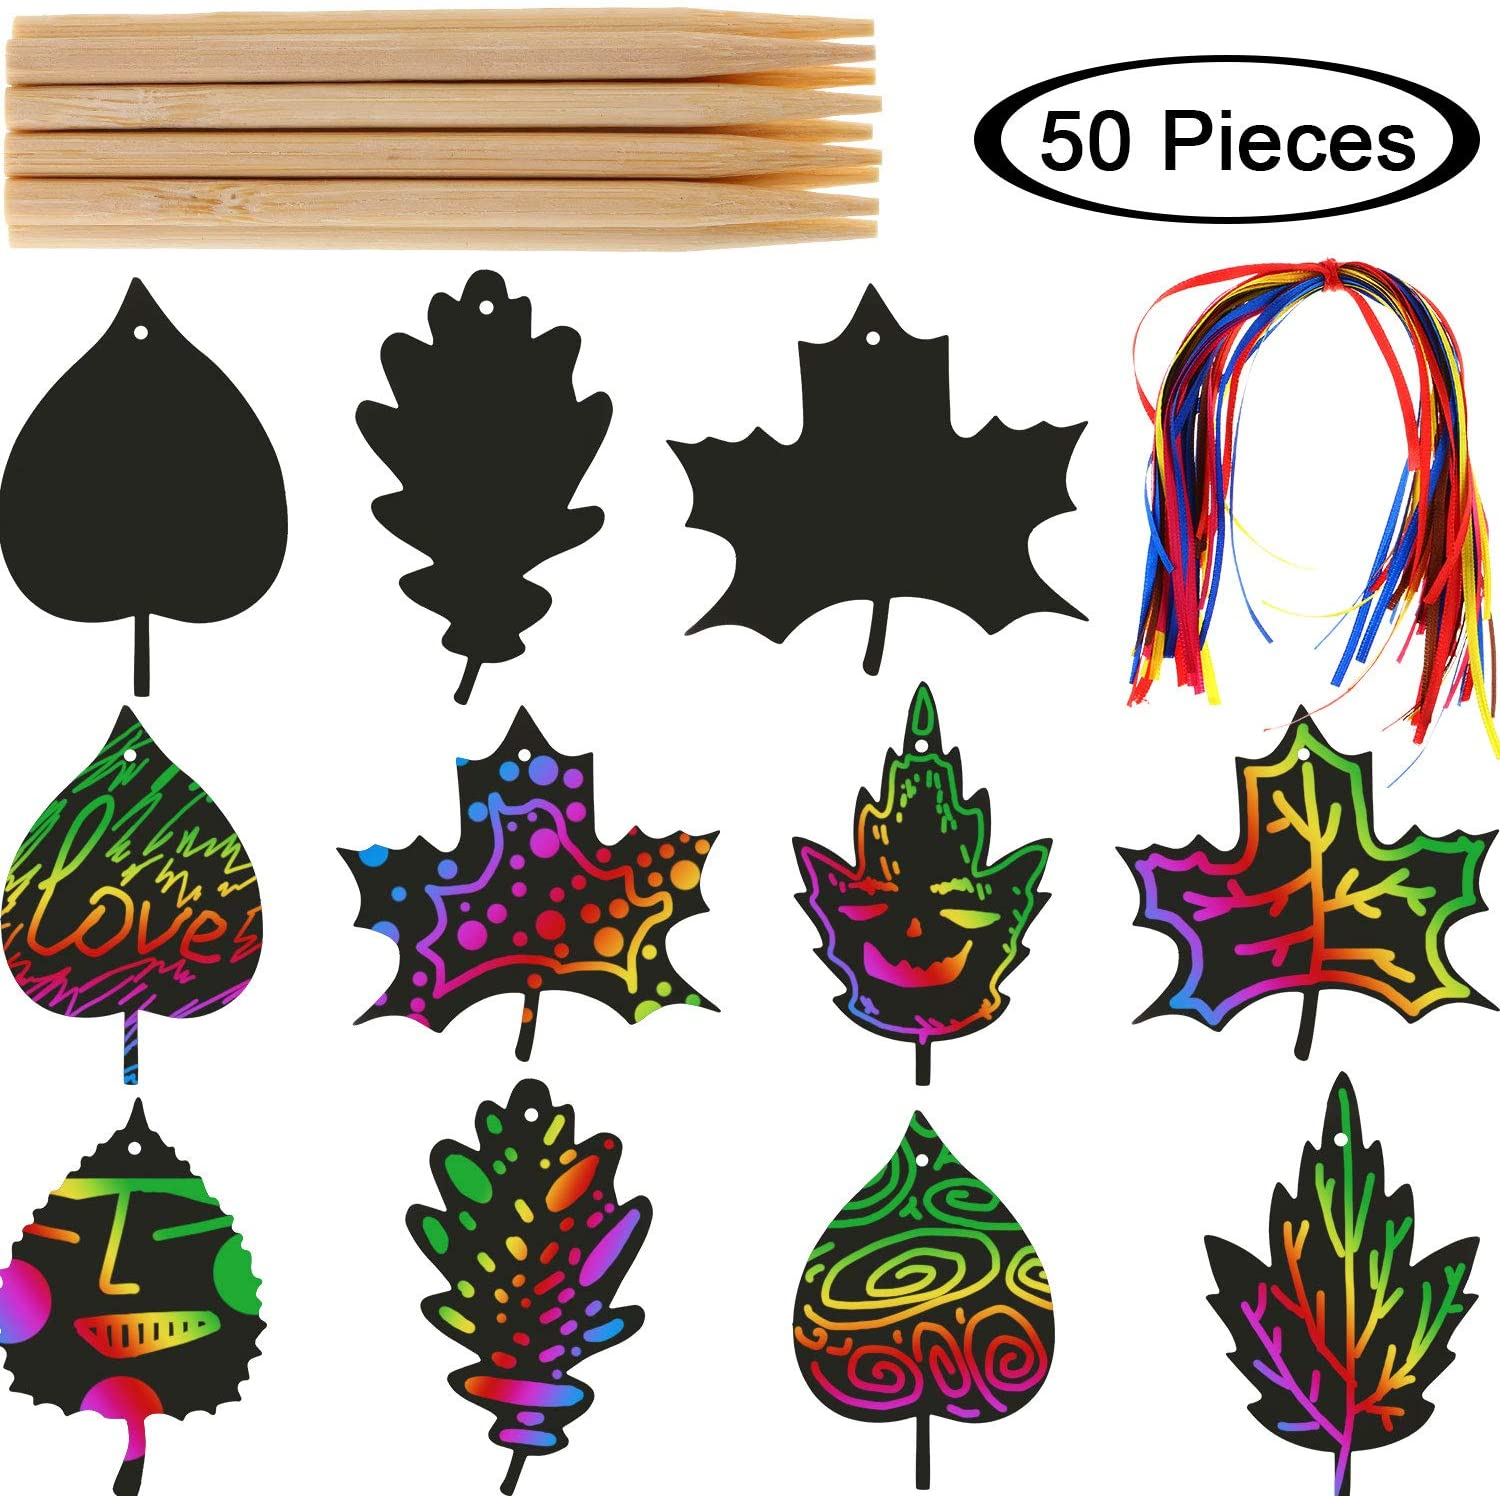 BBTO 50 Pieces Scratch Fall Leaves Colorful Scratch Leaves Scratch Rainbow Art Paper with Ribbons and Wooden Stylus for Thanksgiving Harvest Party